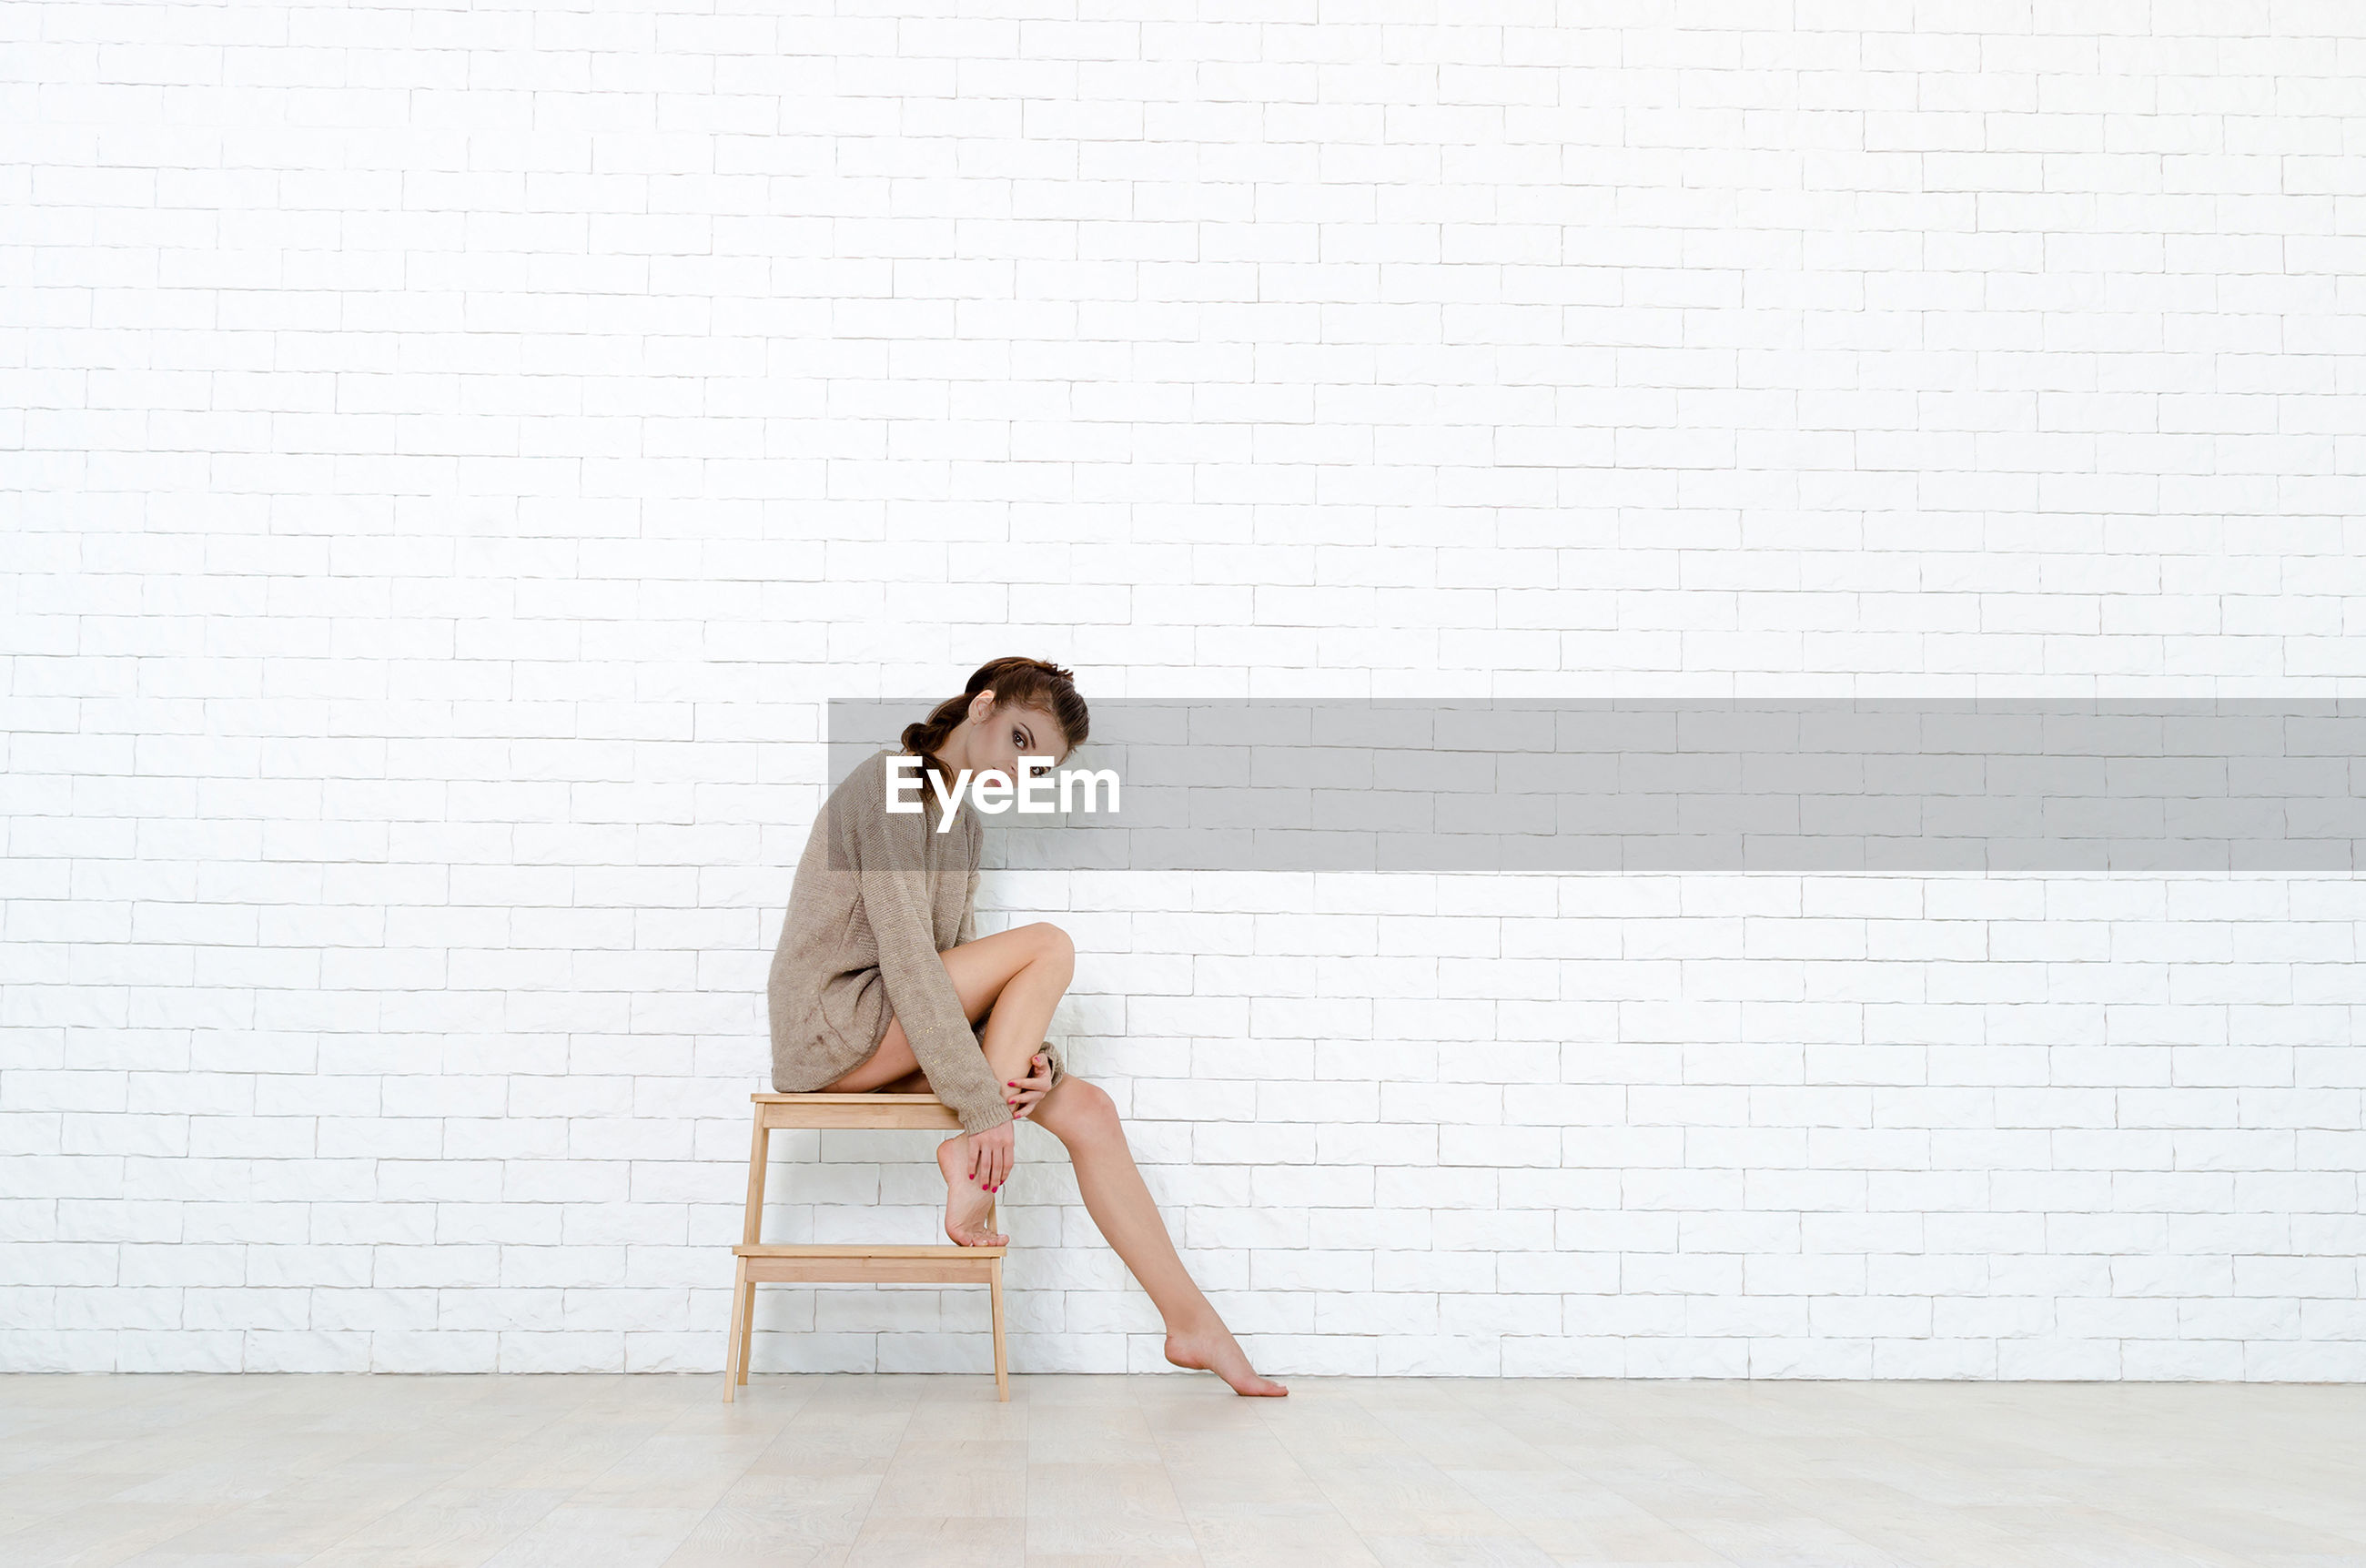 Full length portrait of woman sitting on stool against brick wall